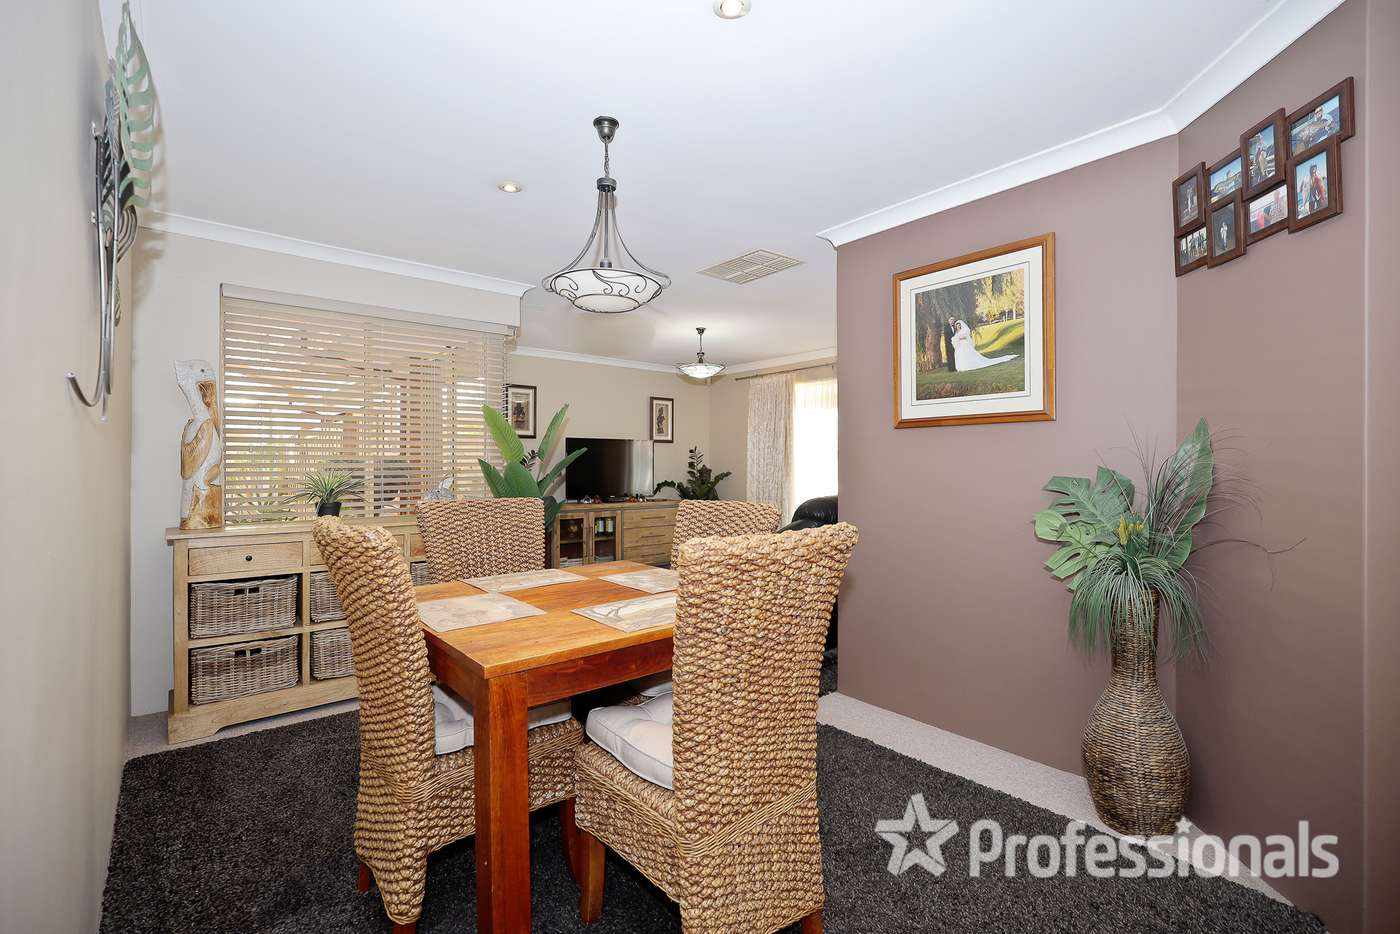 Sixth view of Homely house listing, 63 Star Bush Crescent, Ellenbrook WA 6069